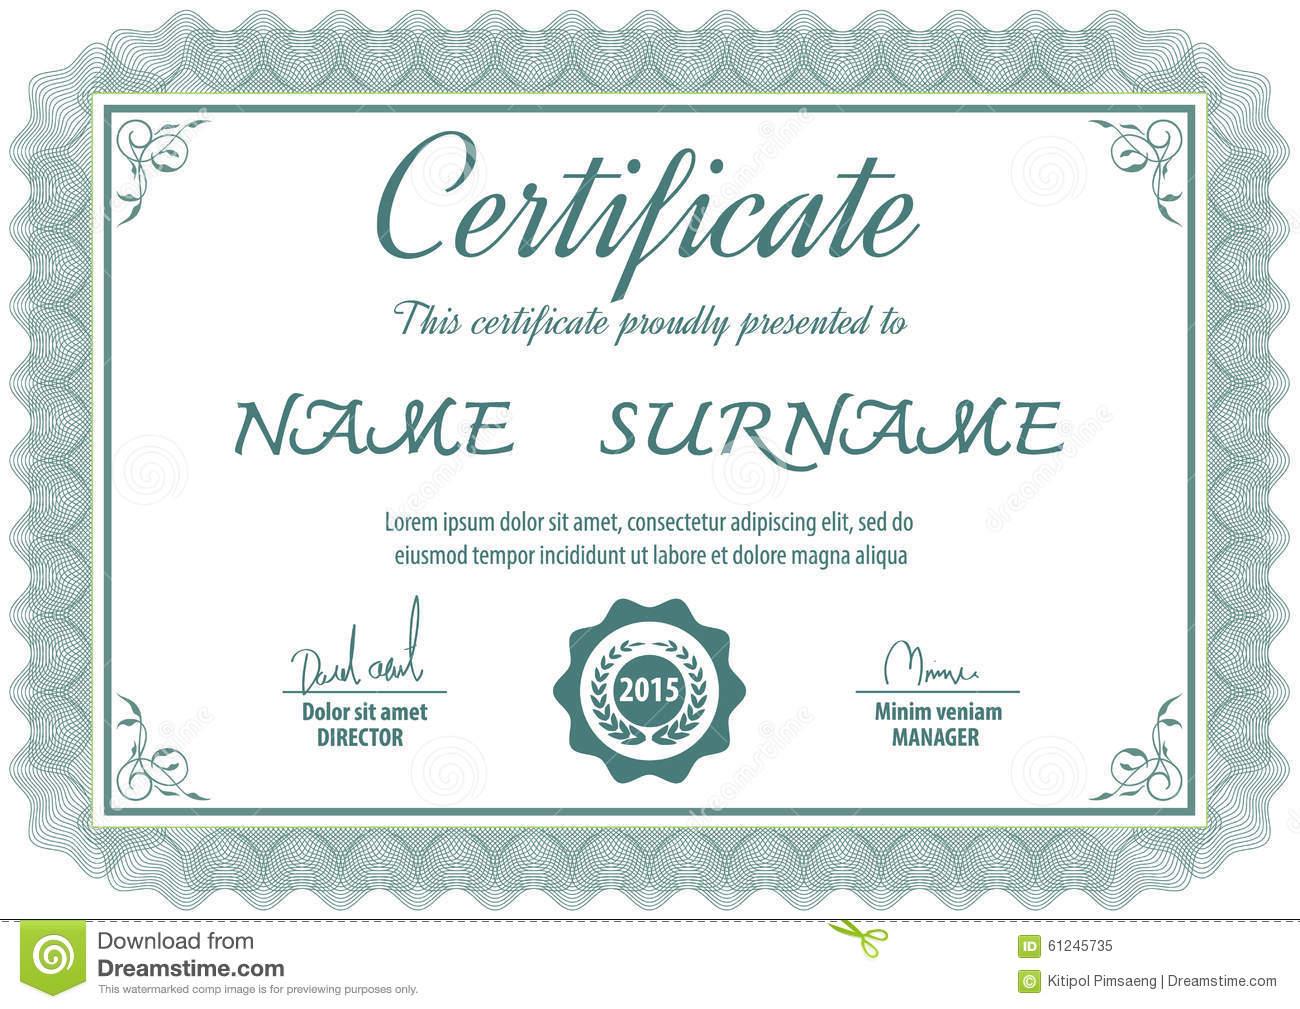 Certificate Templatevector Illustration Stock Vector Illustration